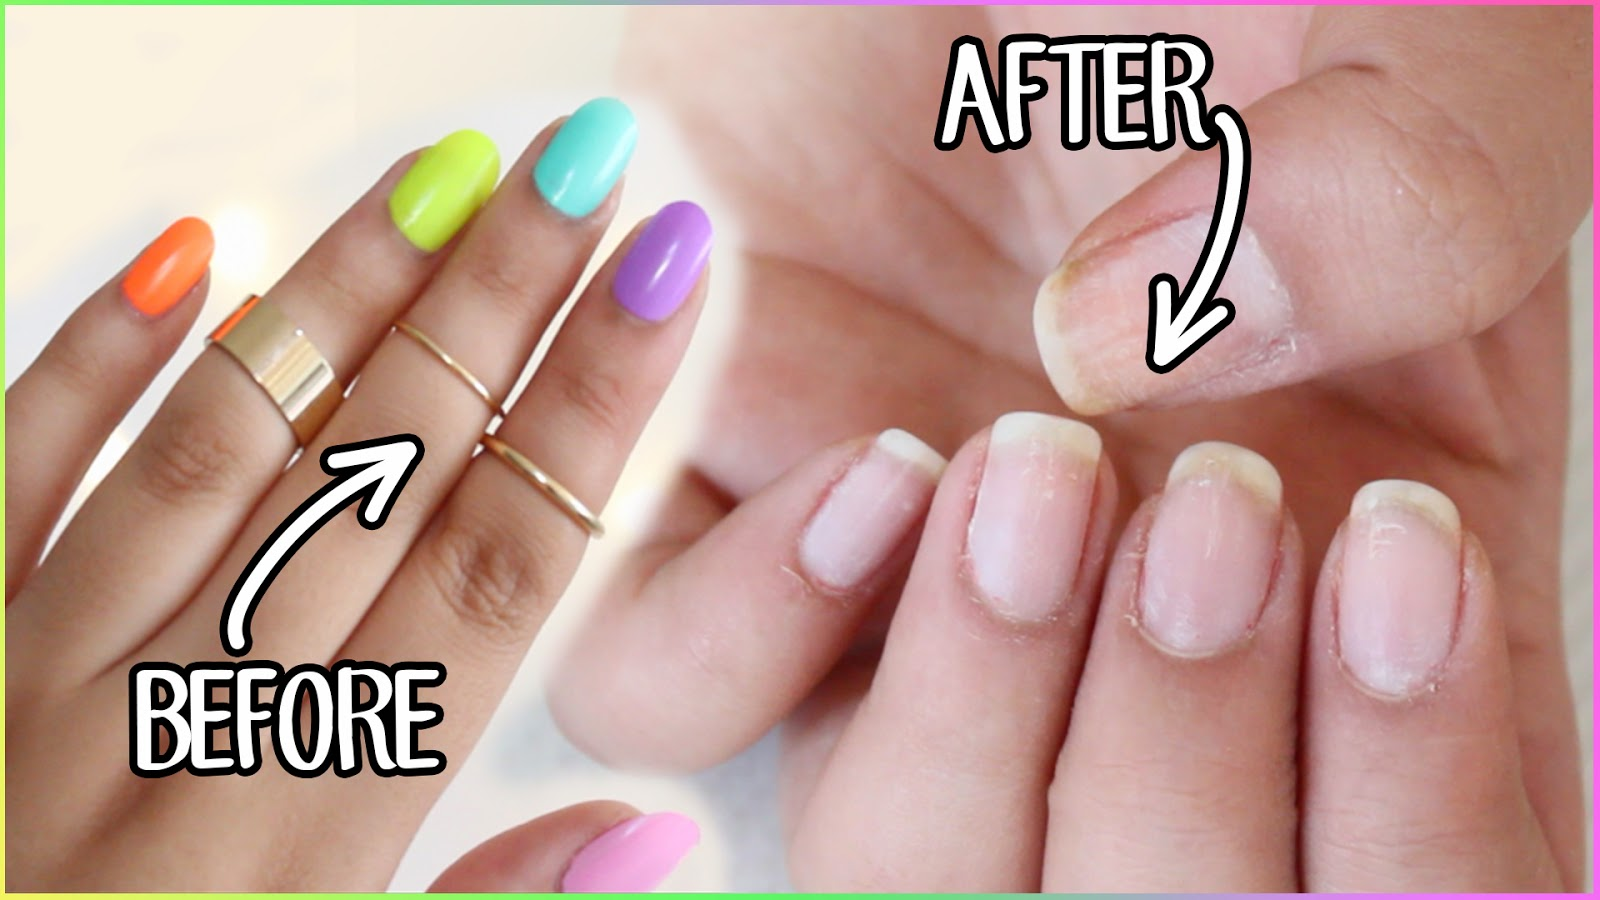 How to remove fake gel nails - Expression Nails